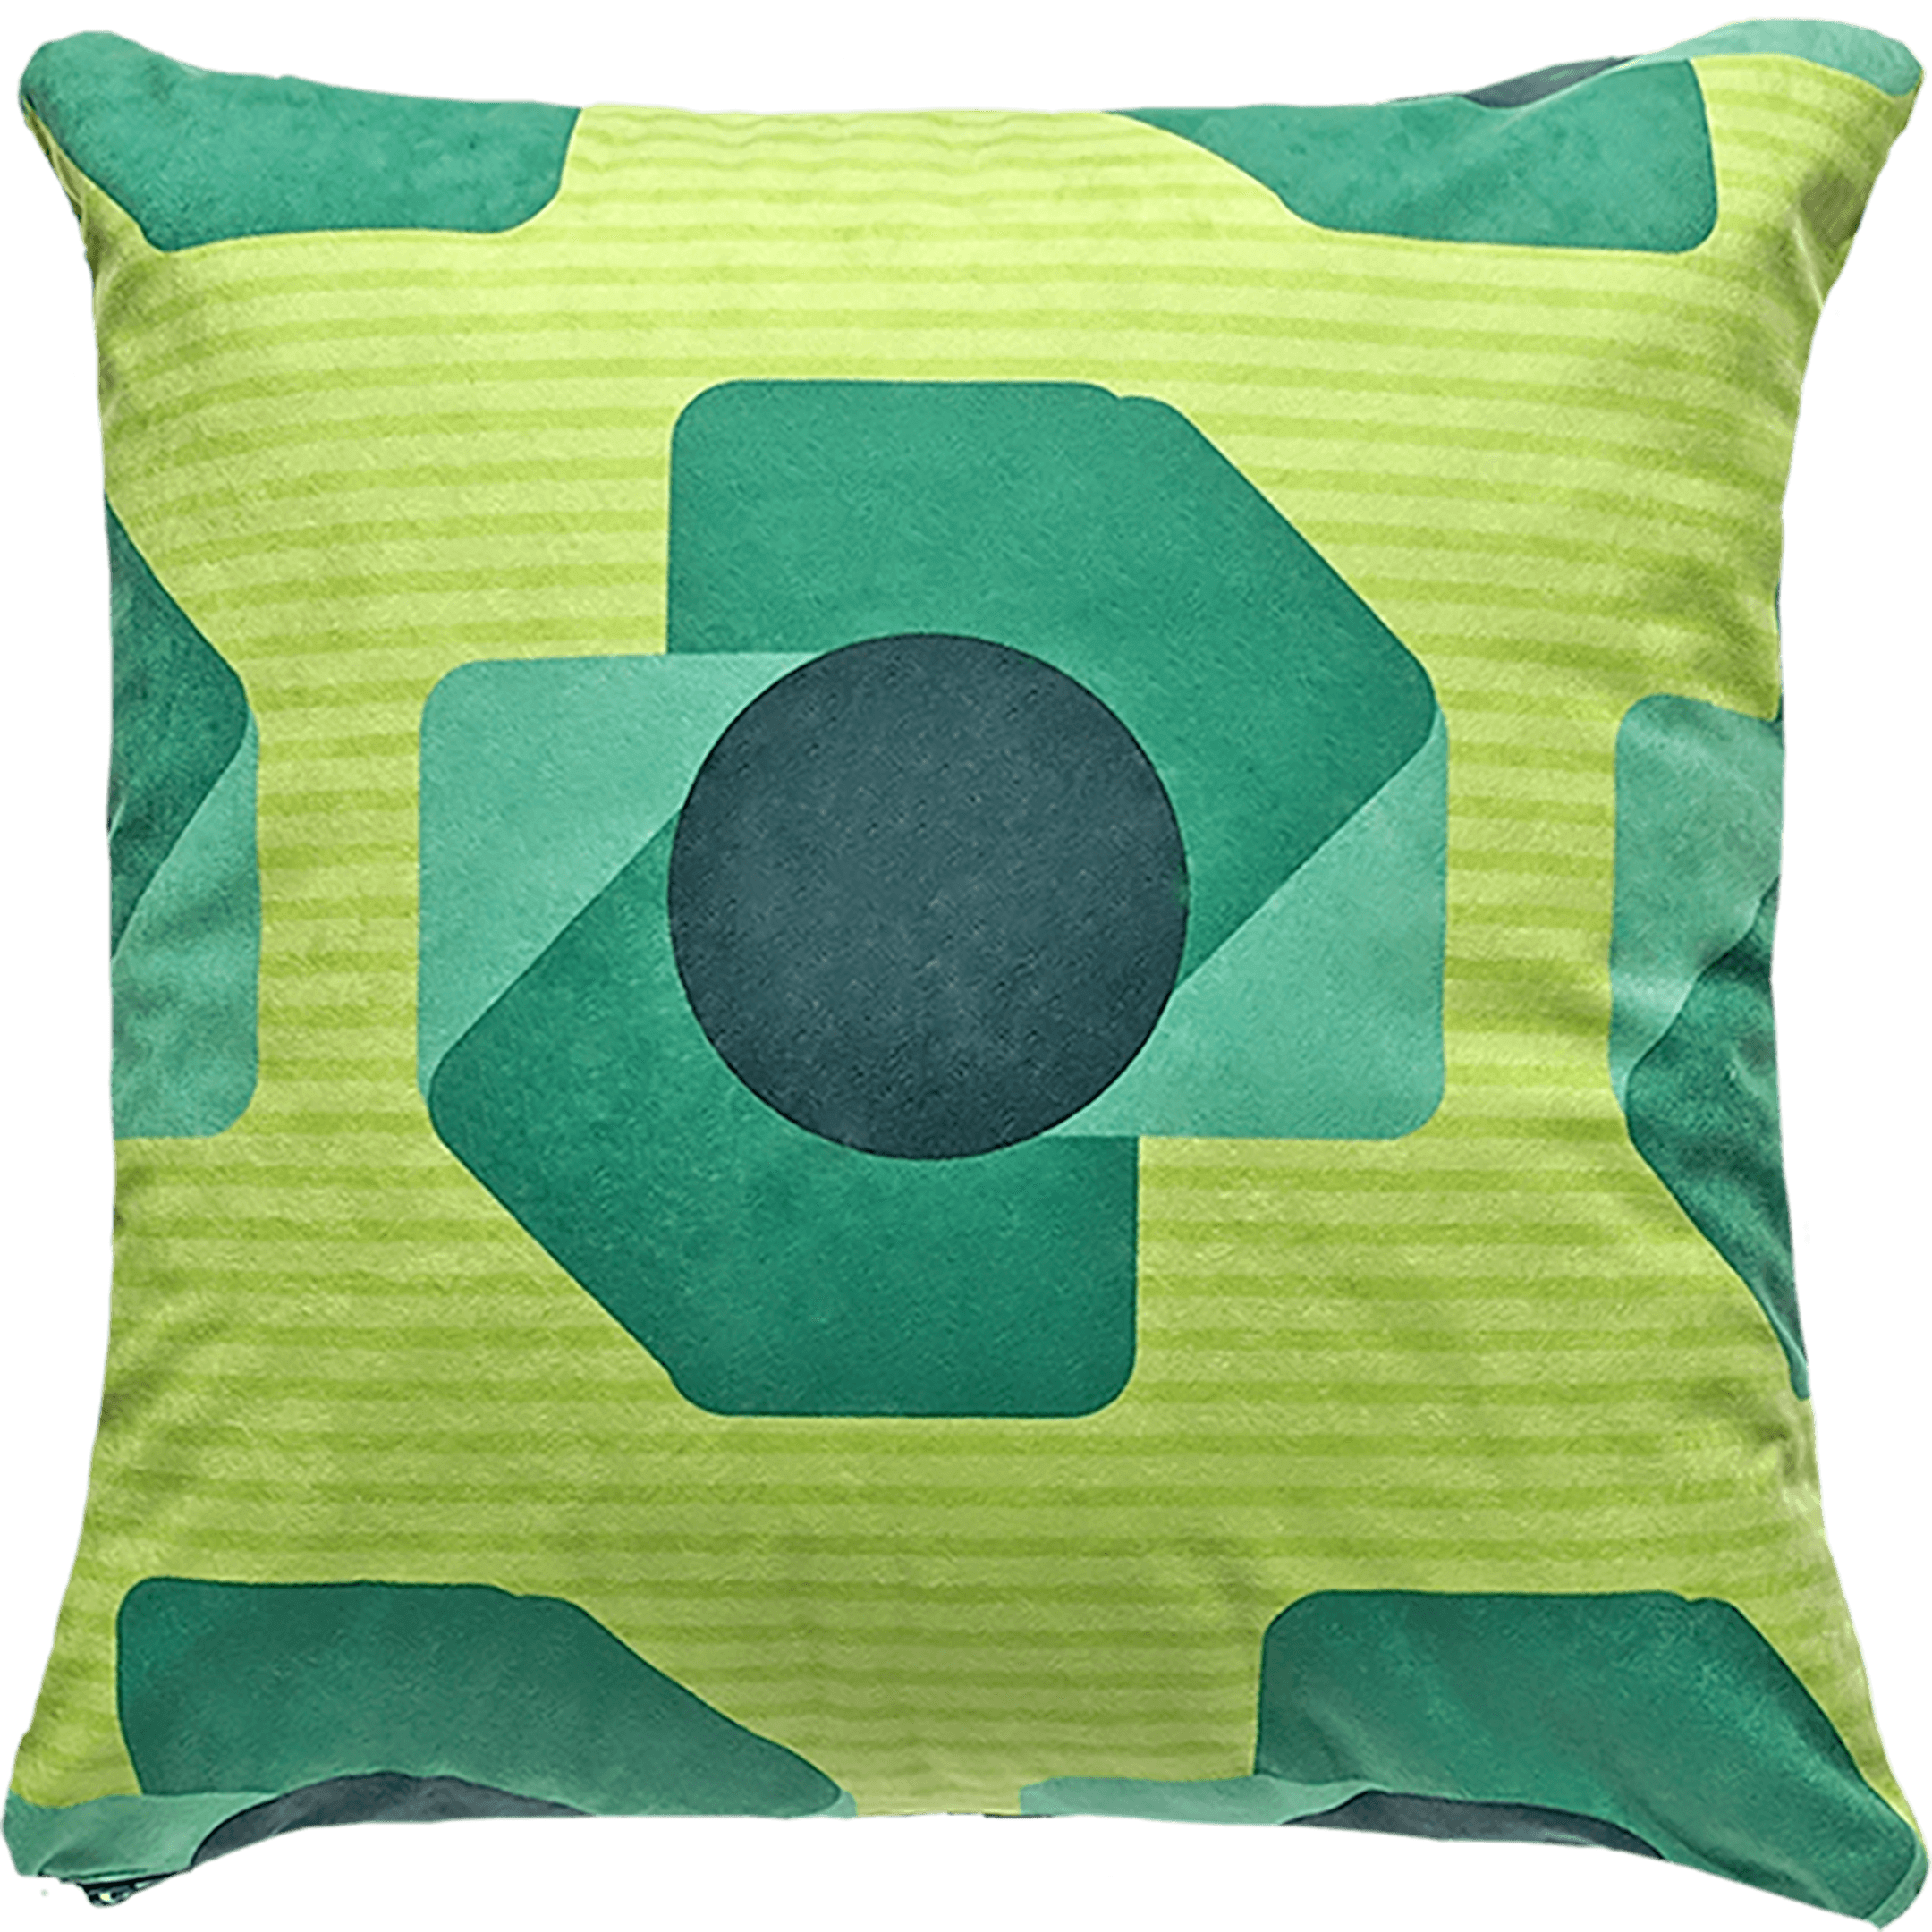 Patterned faux suede green throw pillow. Mint ,green blue and blue-gray shapes on top of lime green and light green stripes.